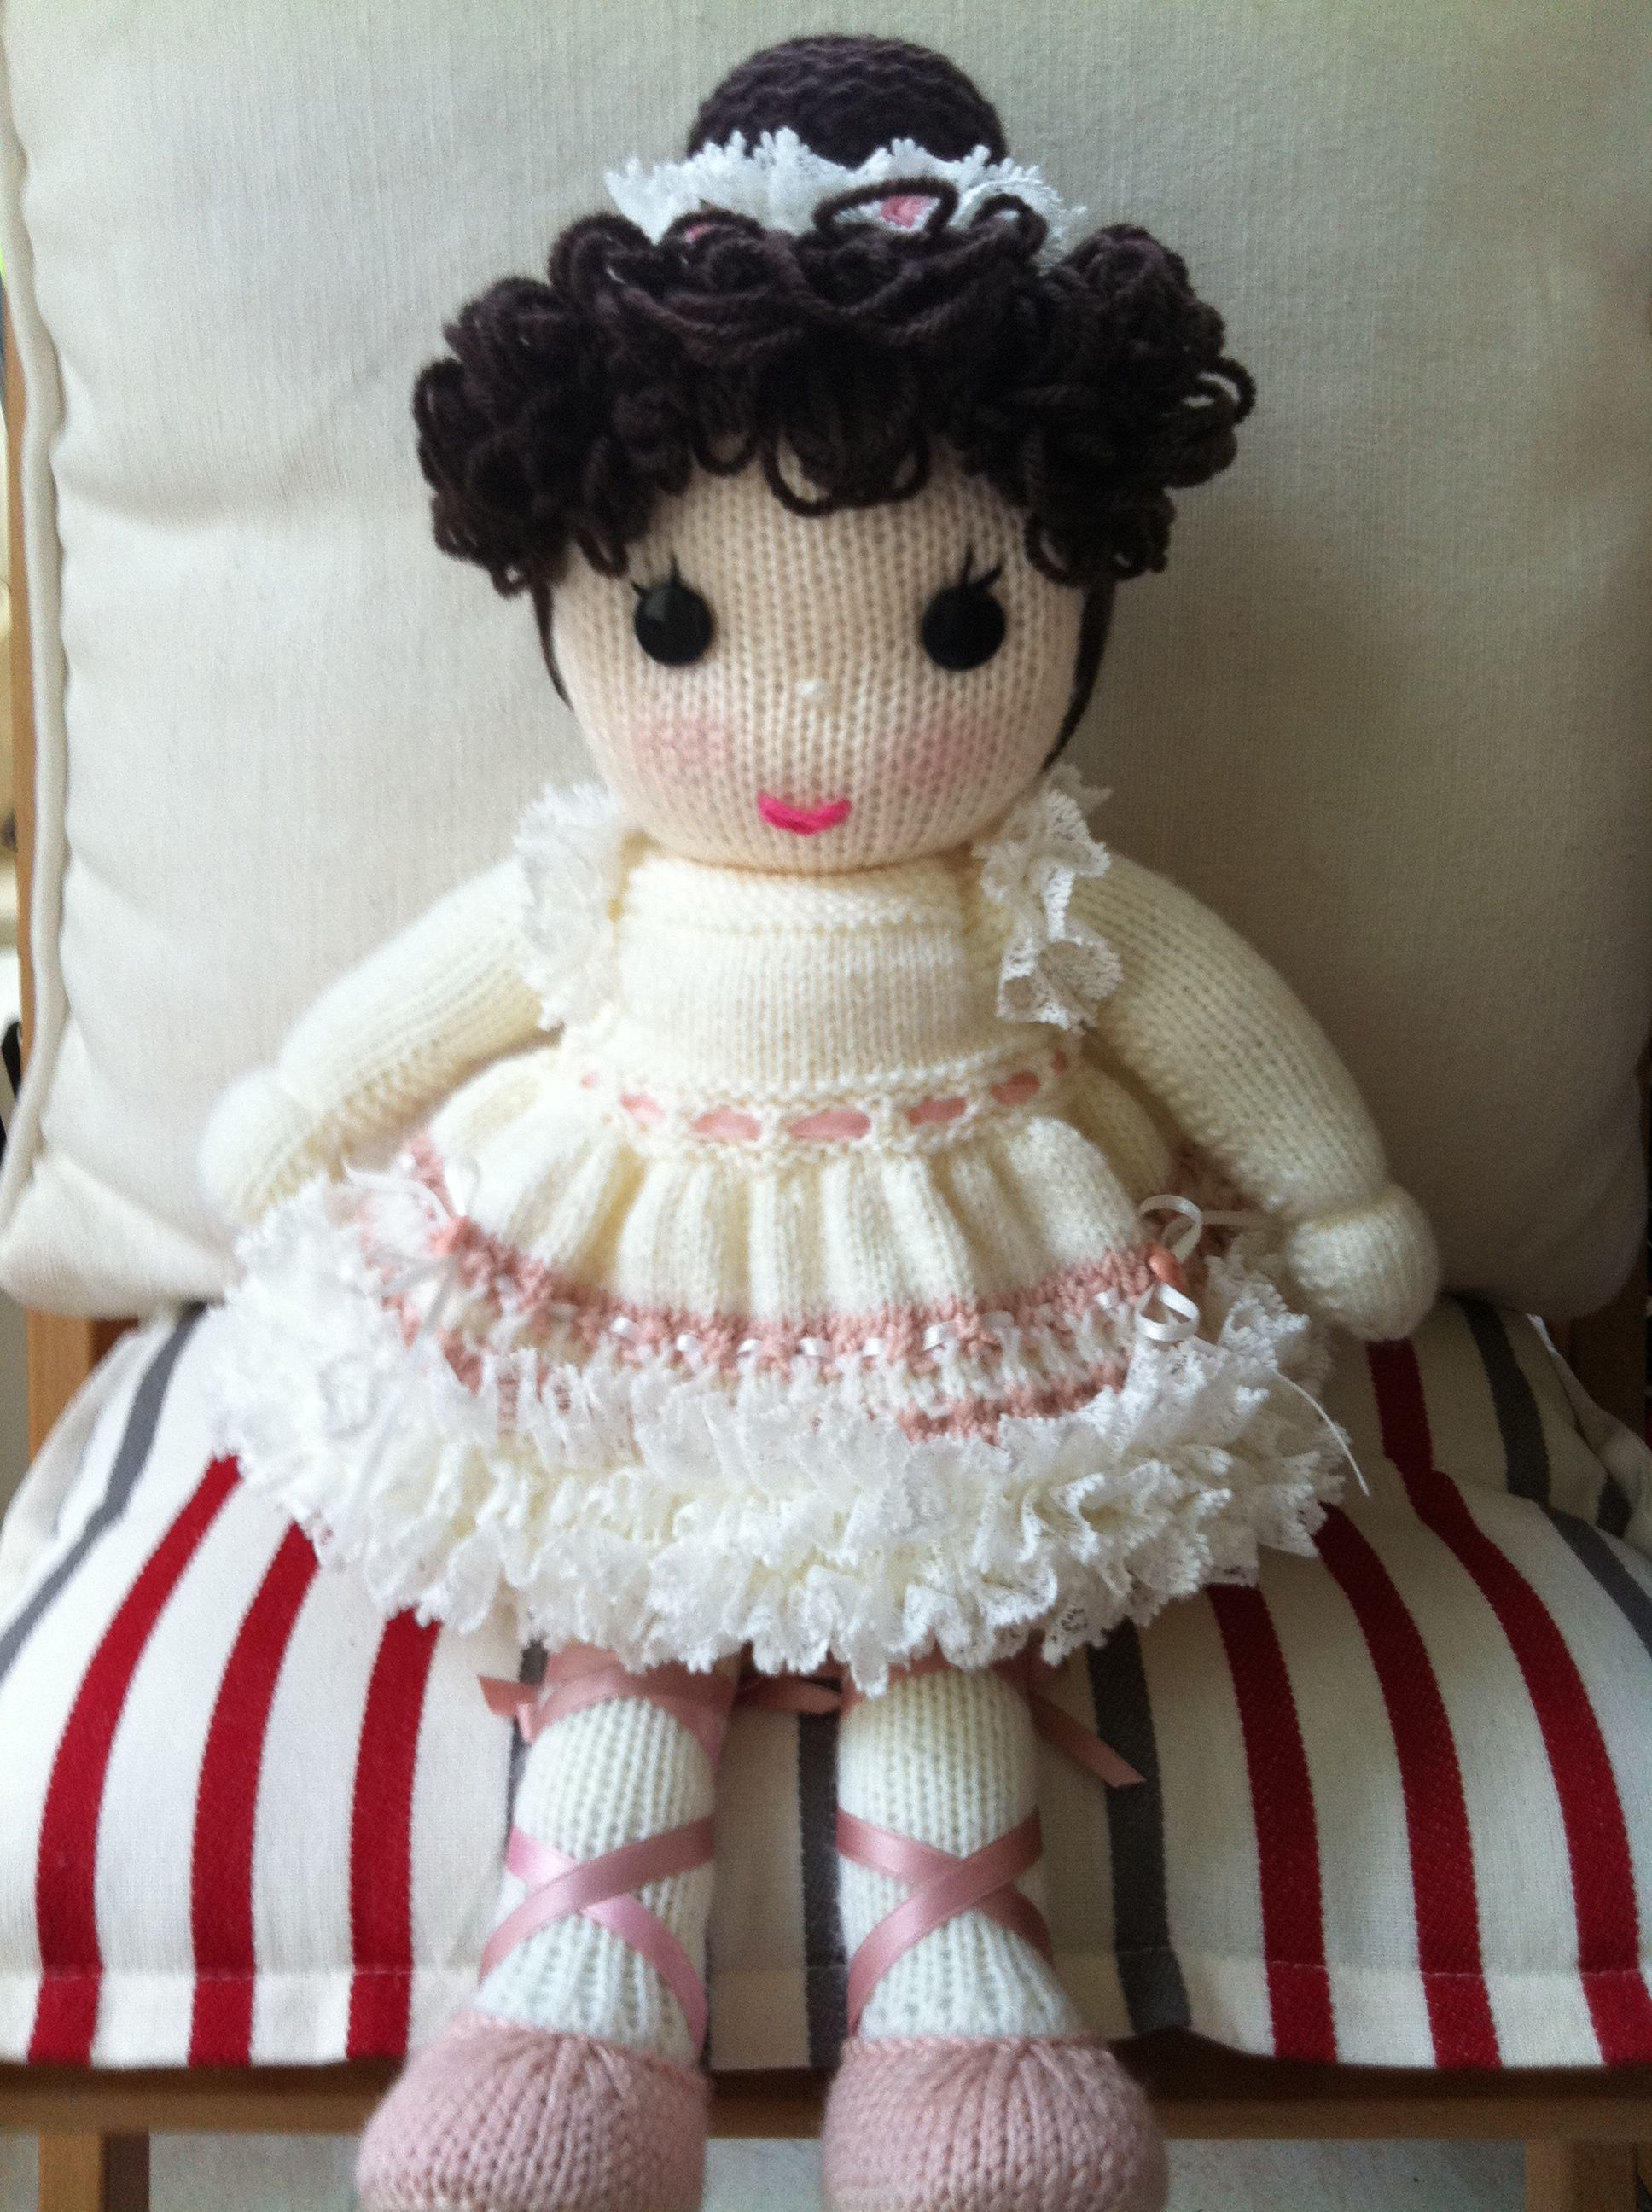 Hand Knit - Bettie Ballerina | Knitted dolls, Knitted doll ...